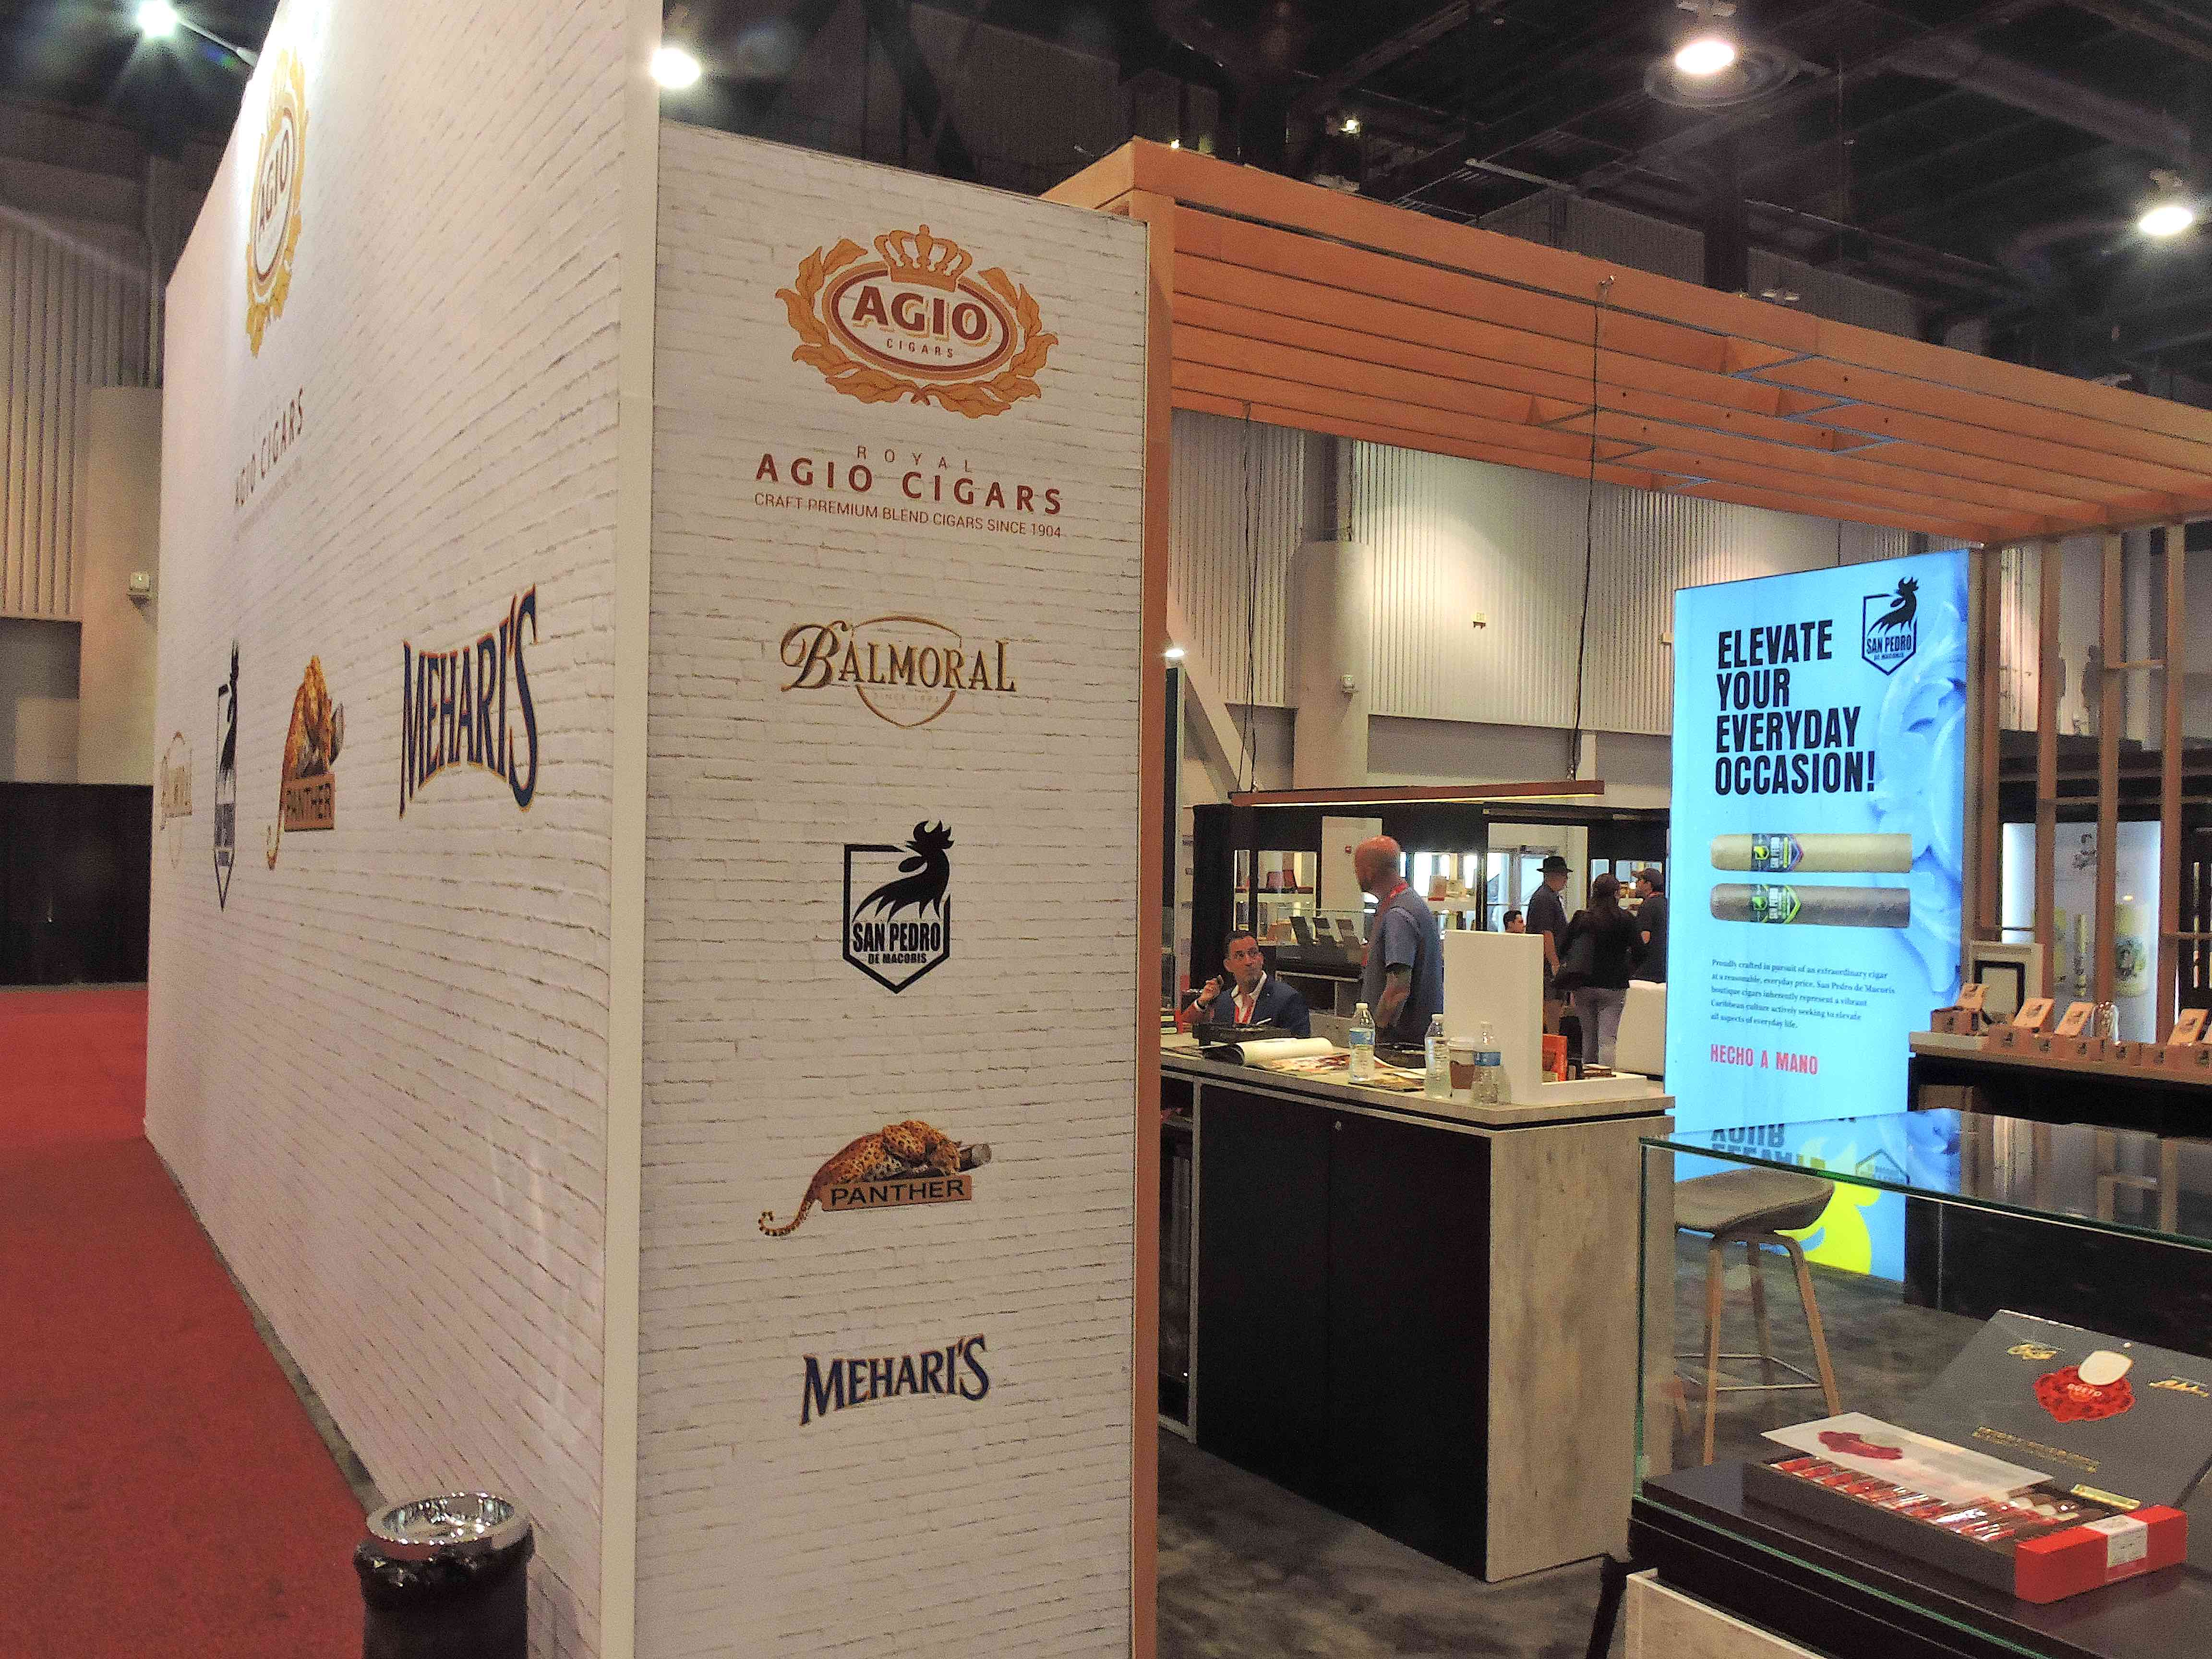 Feature Story: Spotlight on Royal Agio Cigars at the 2018 IPCPR